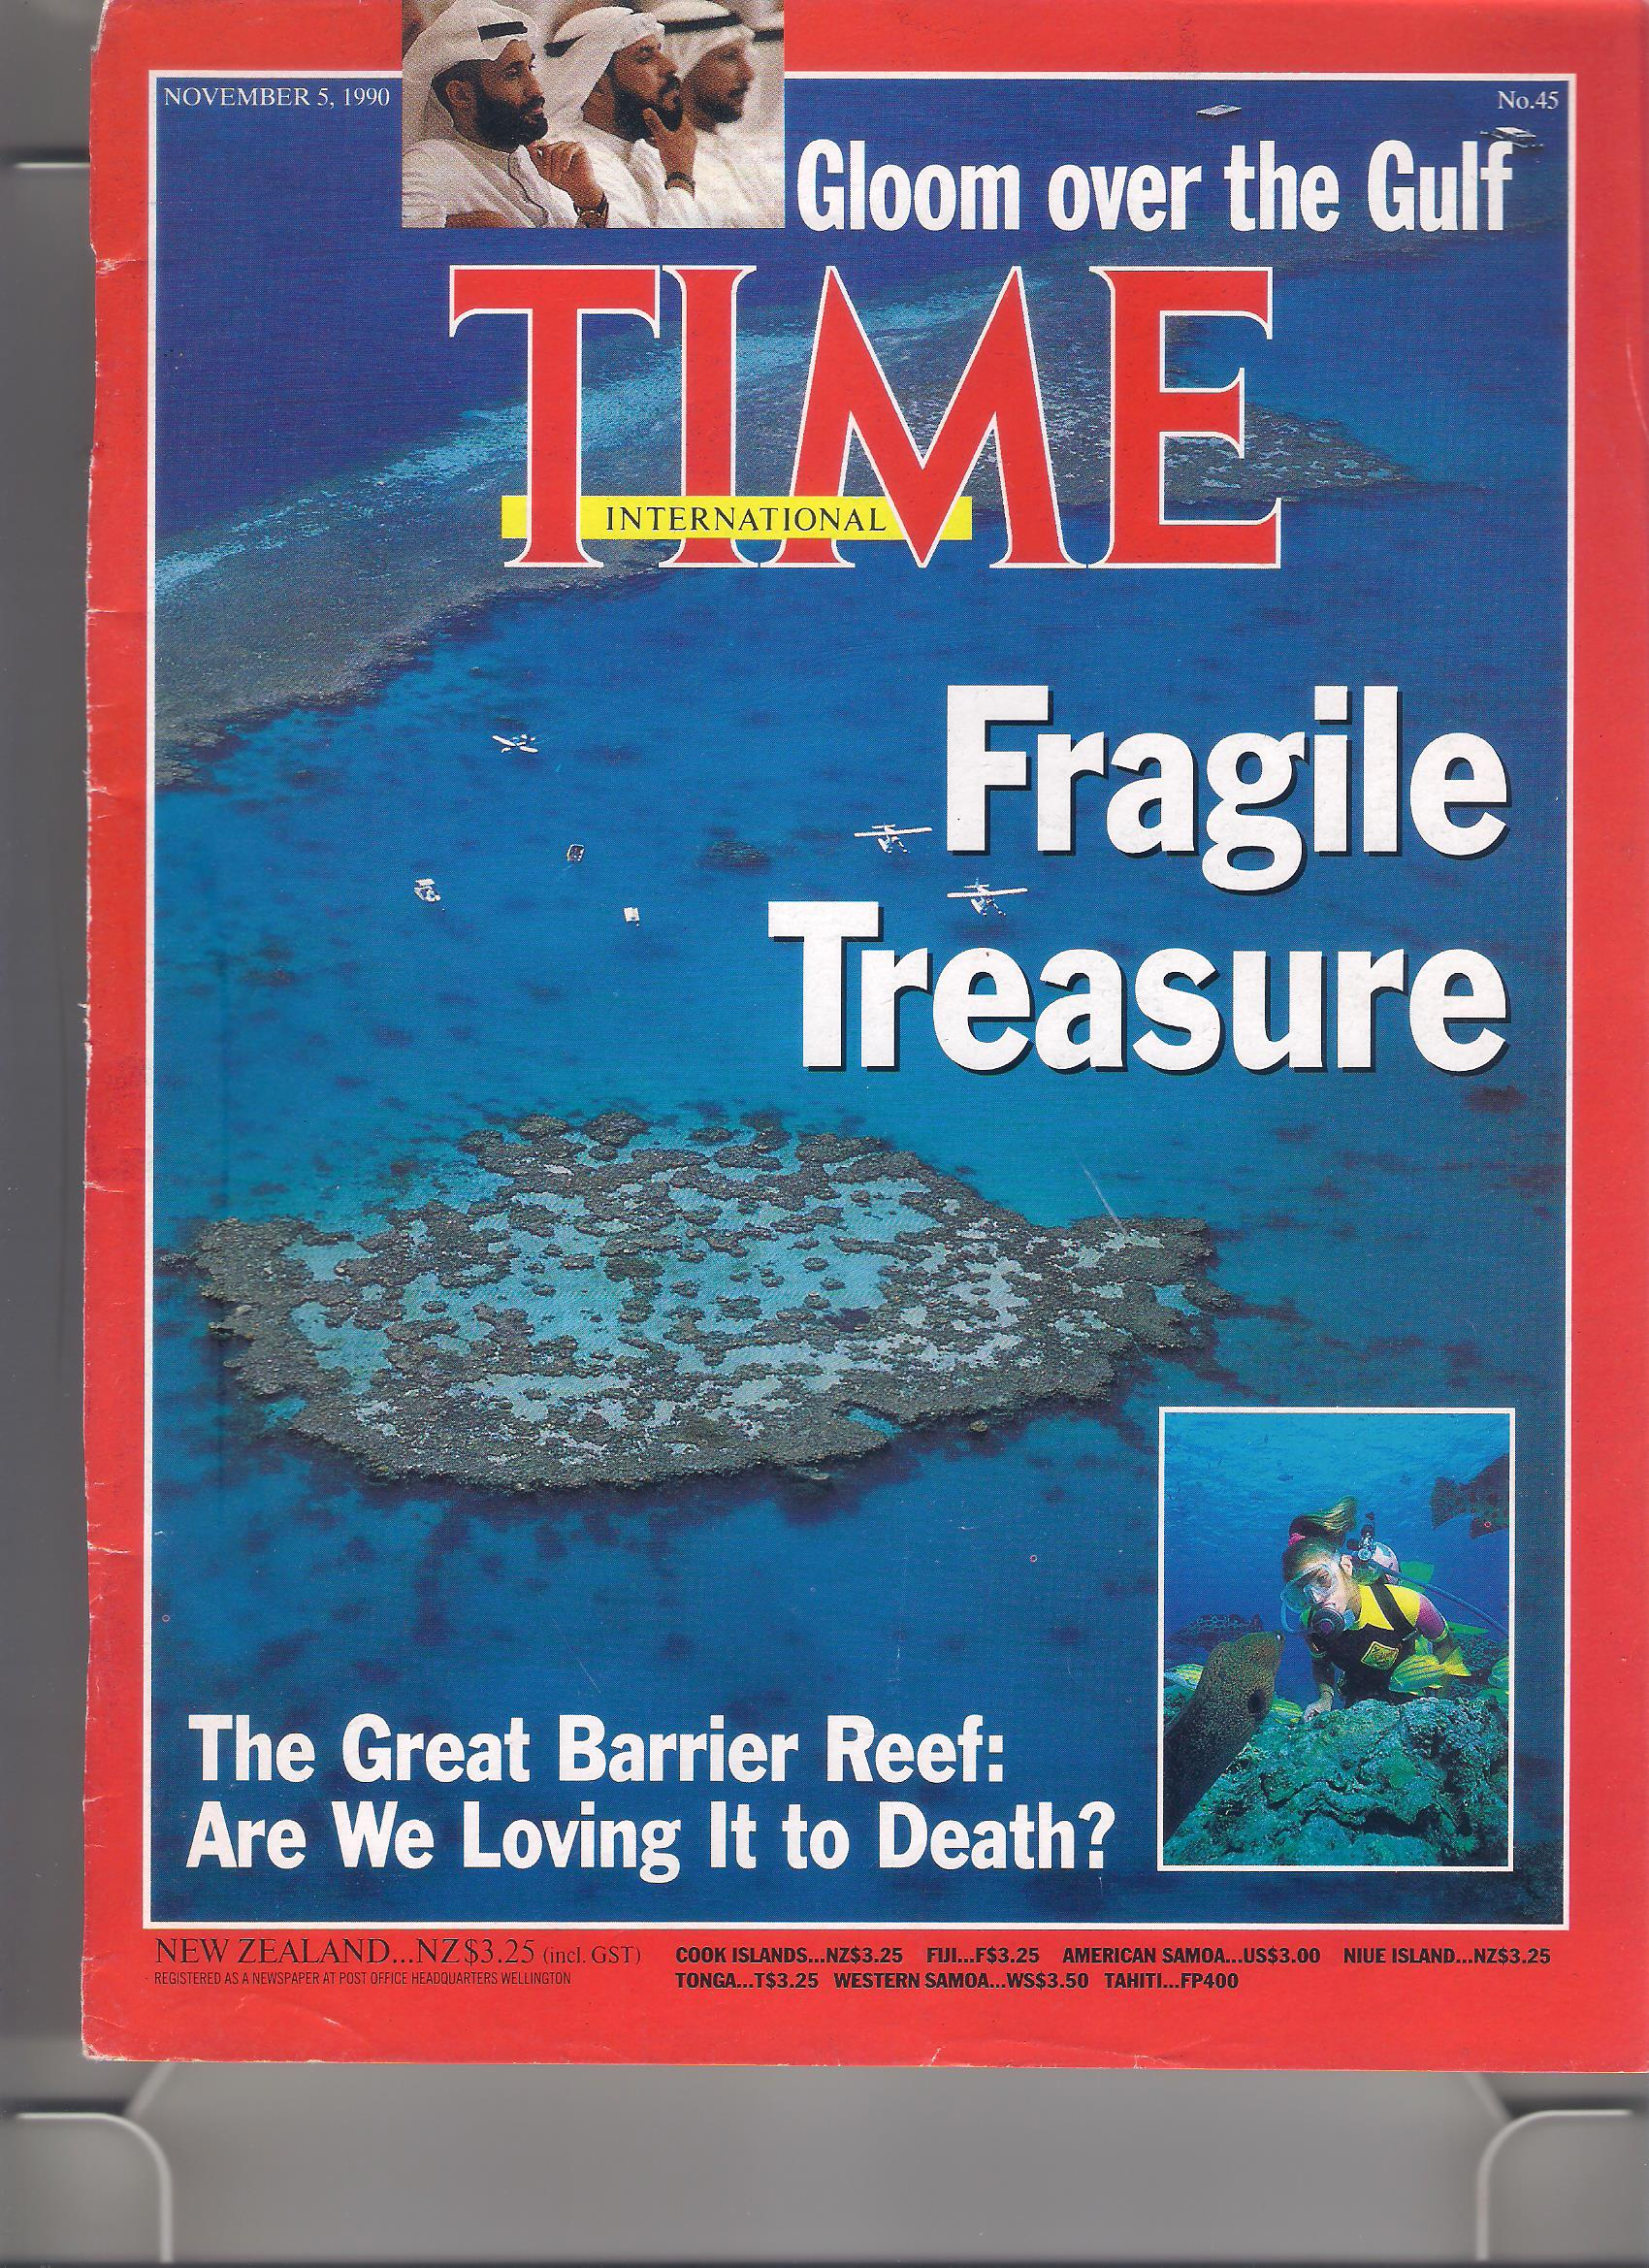 Time Cover Story on Barrier Reef